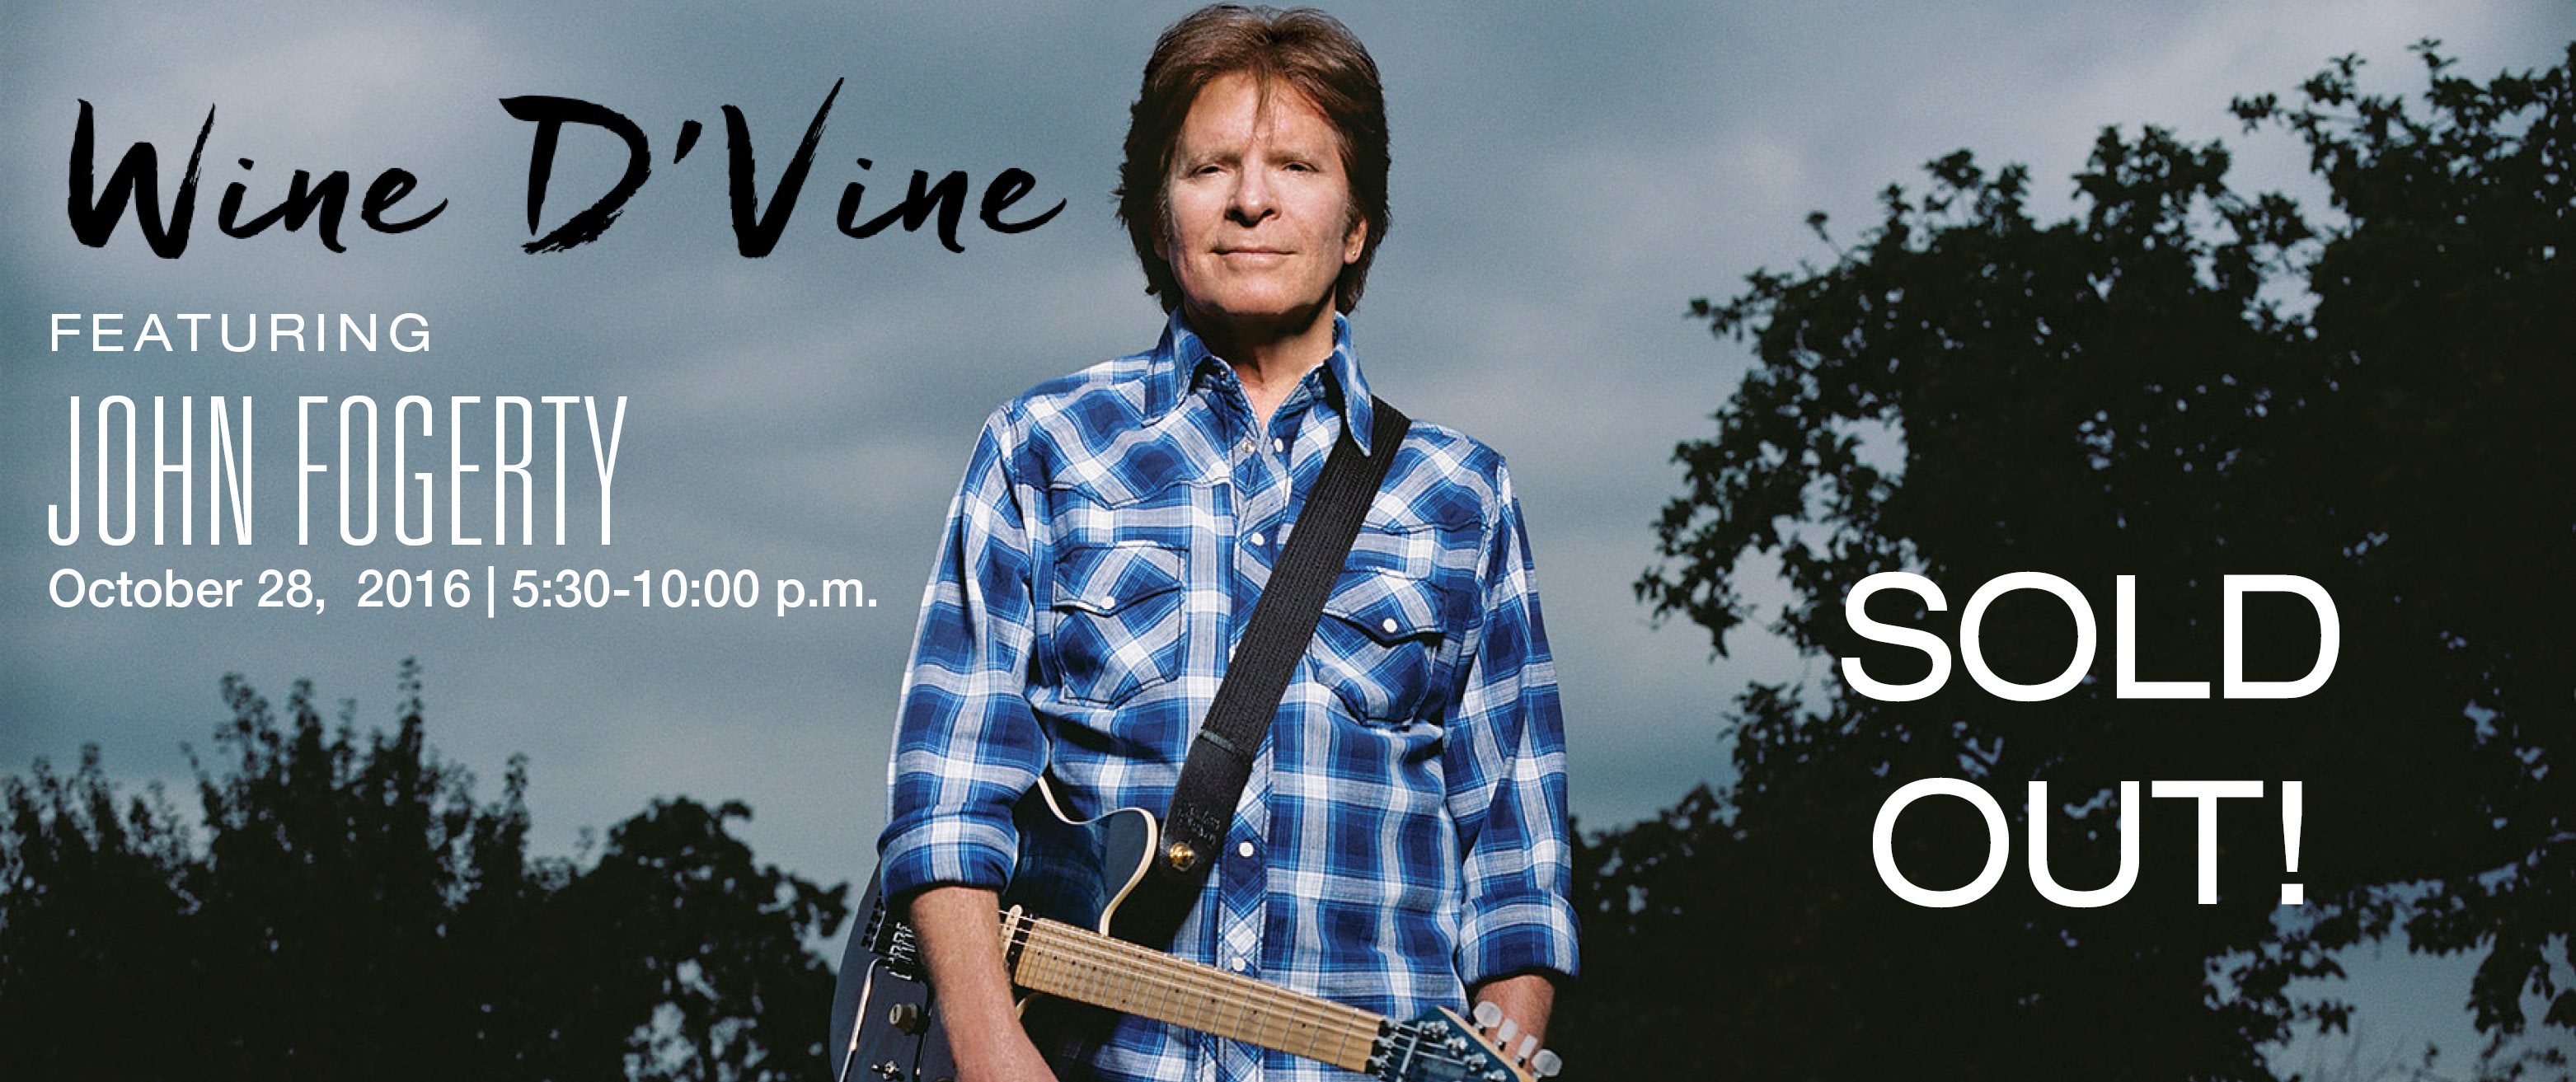 Banner promoting John Fogerty at Wine D'Vine